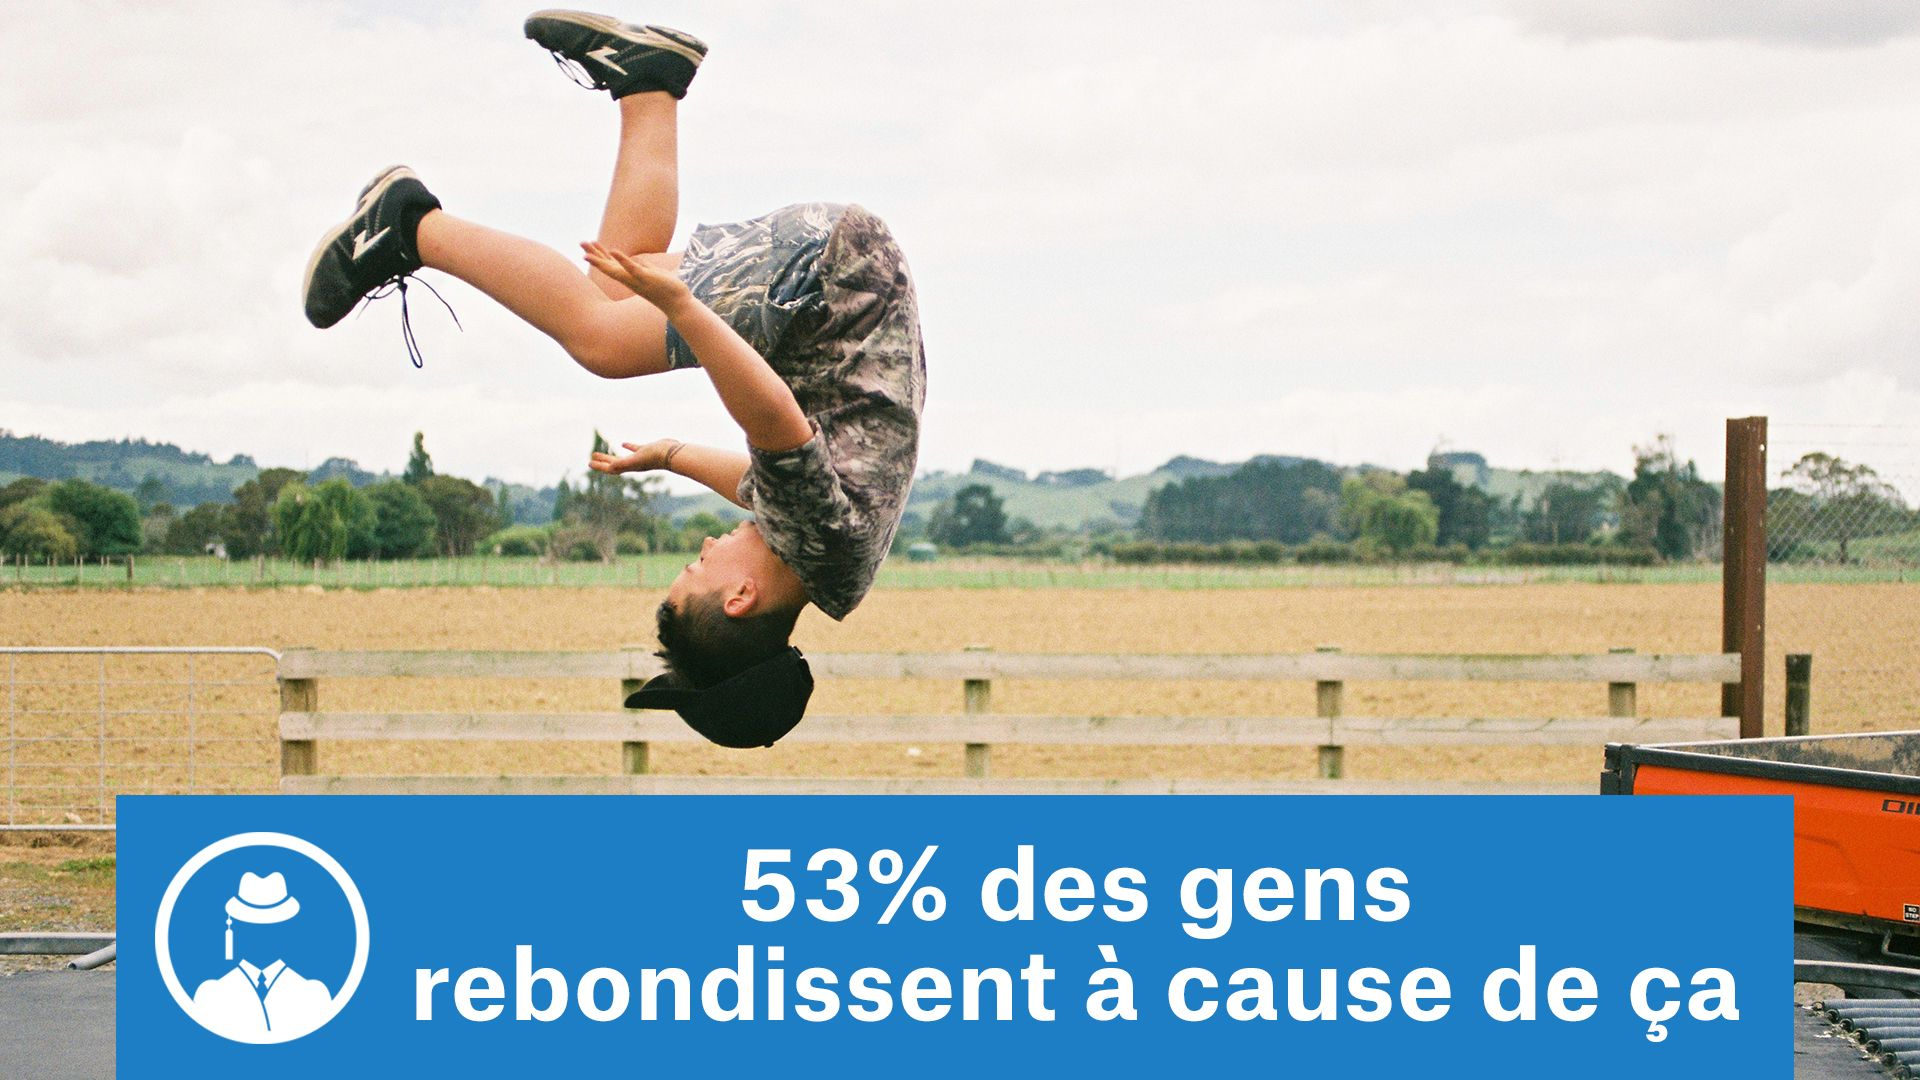 53% des gens rebondissent à cause de ça #GrowthHacking #WebMarketing #FormationGrowthHacking #CentreDeFormationFrance #TunnelAARRR #AARRR #SocialMedia #CommunityManagement #SEO #MarketingDigital #SiteWeb #SEO #GoogleSEO